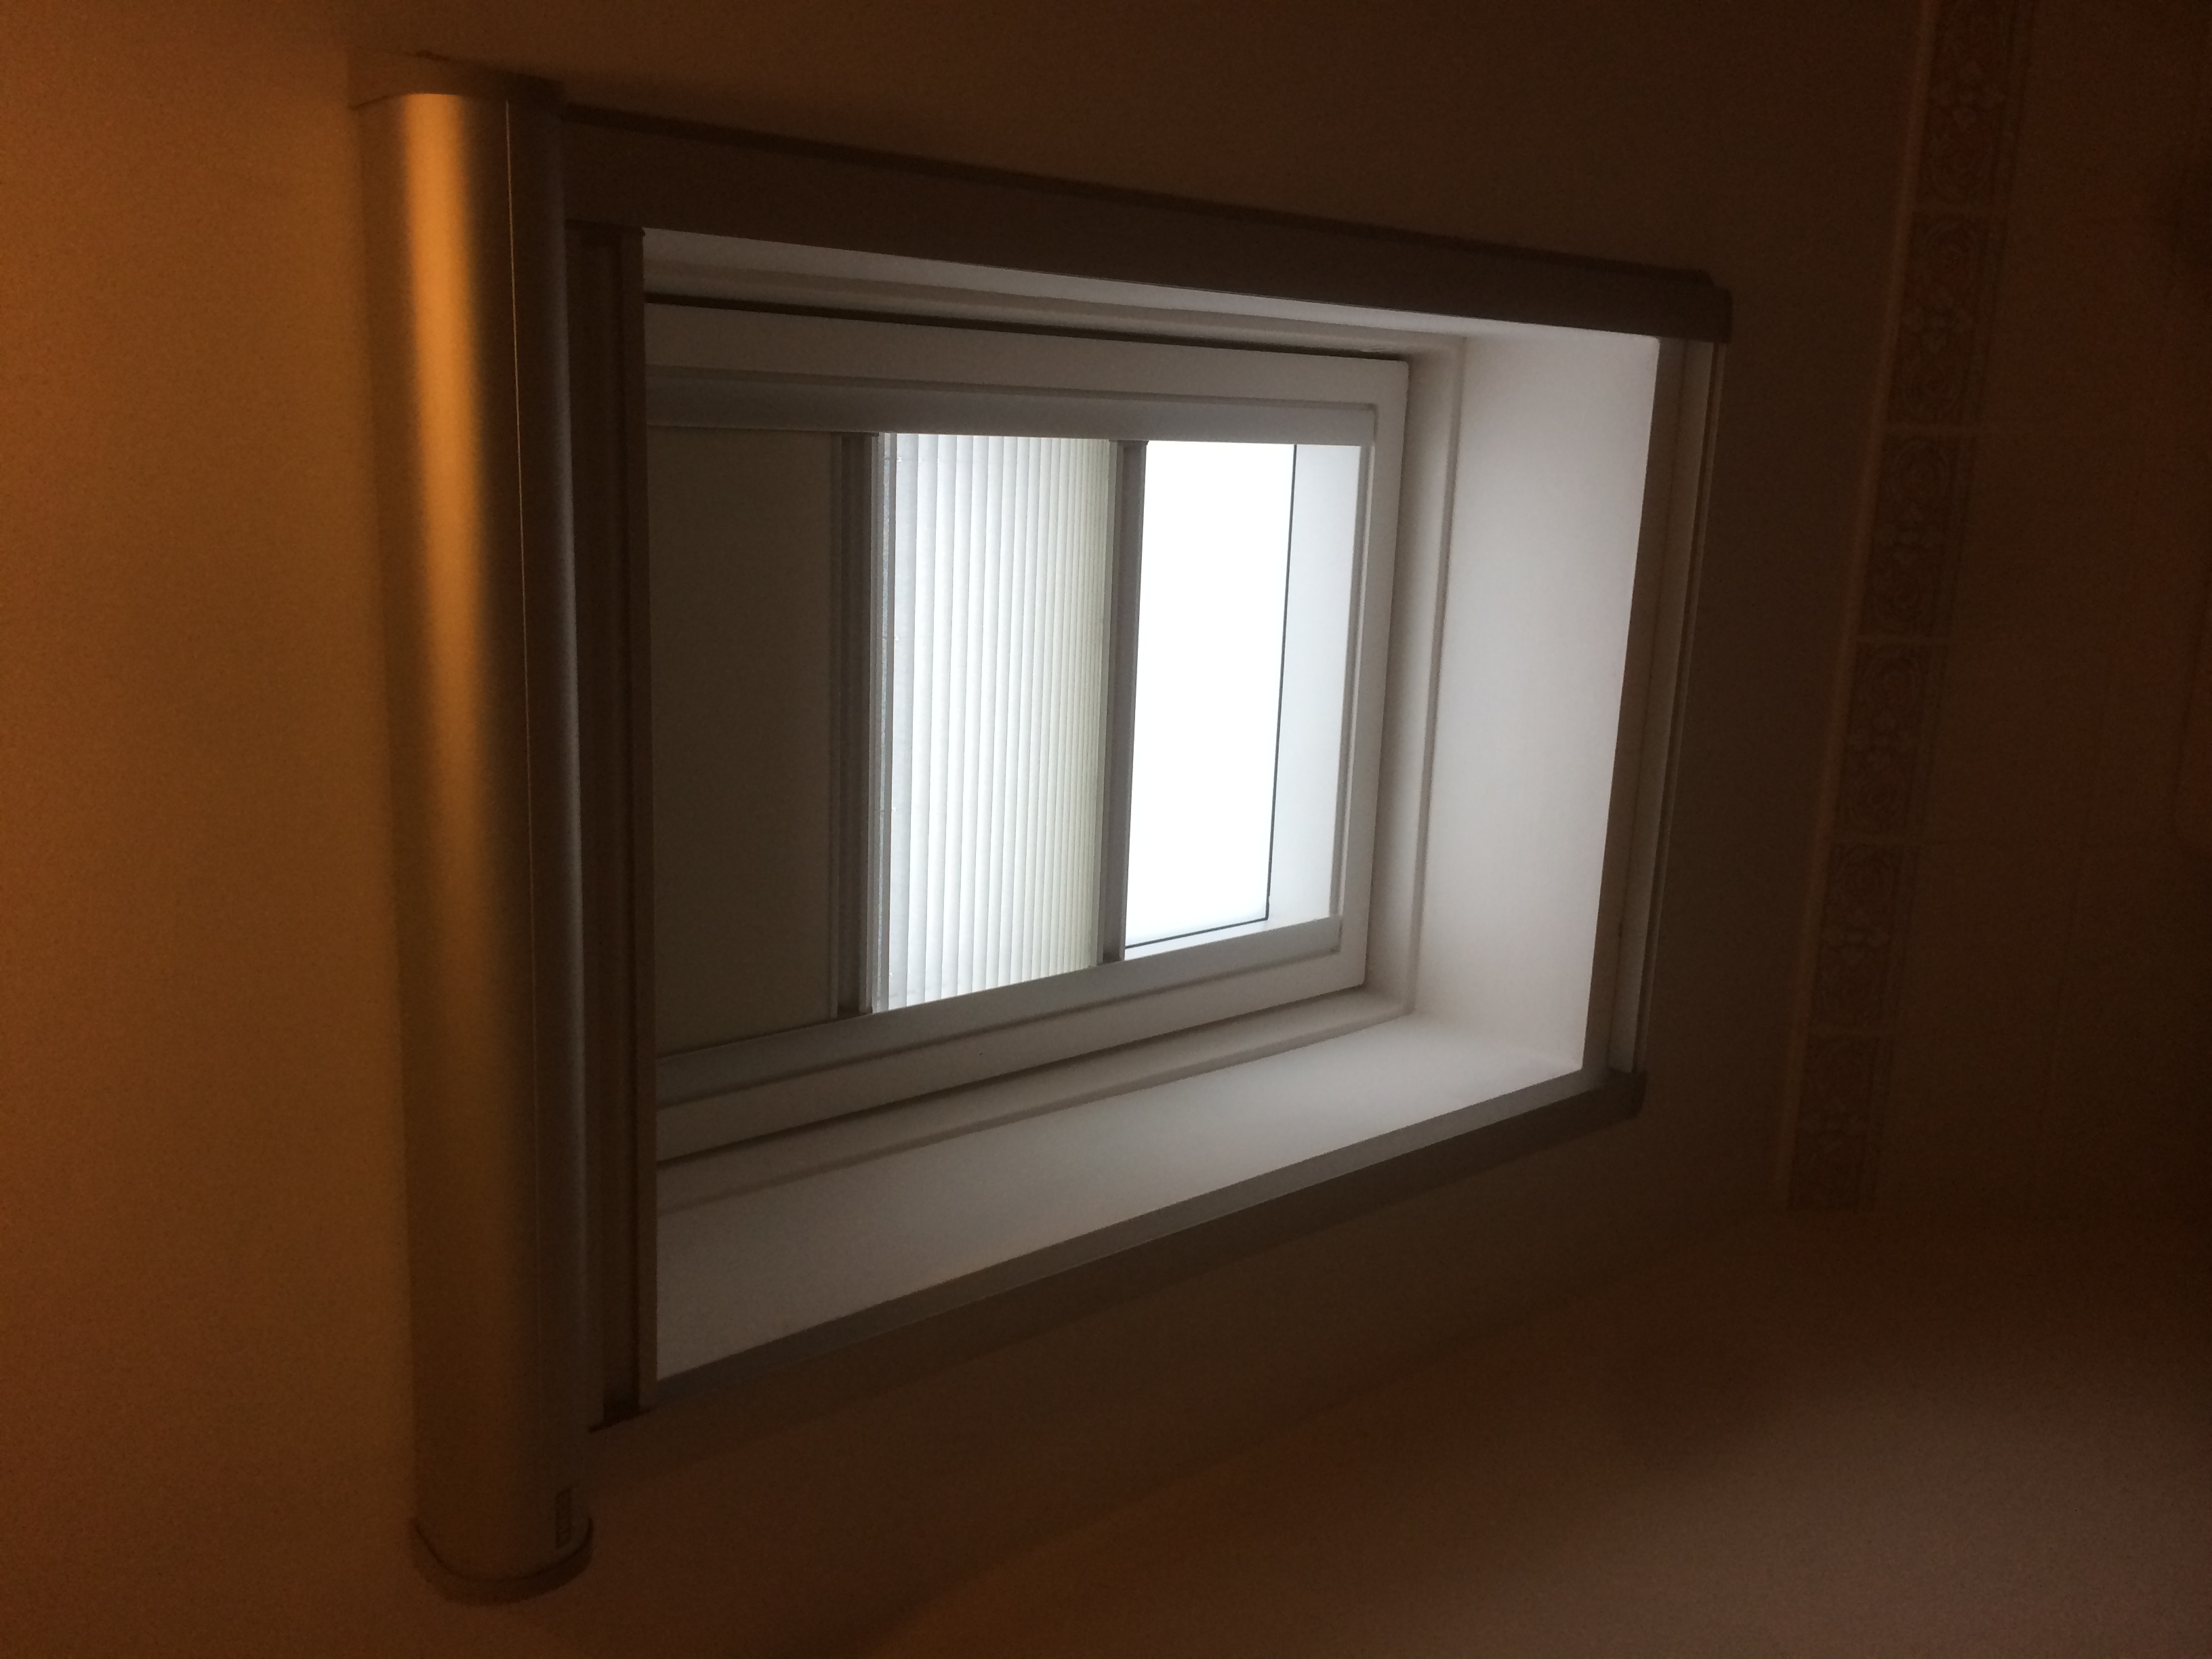 VELUX Insect Screen Install